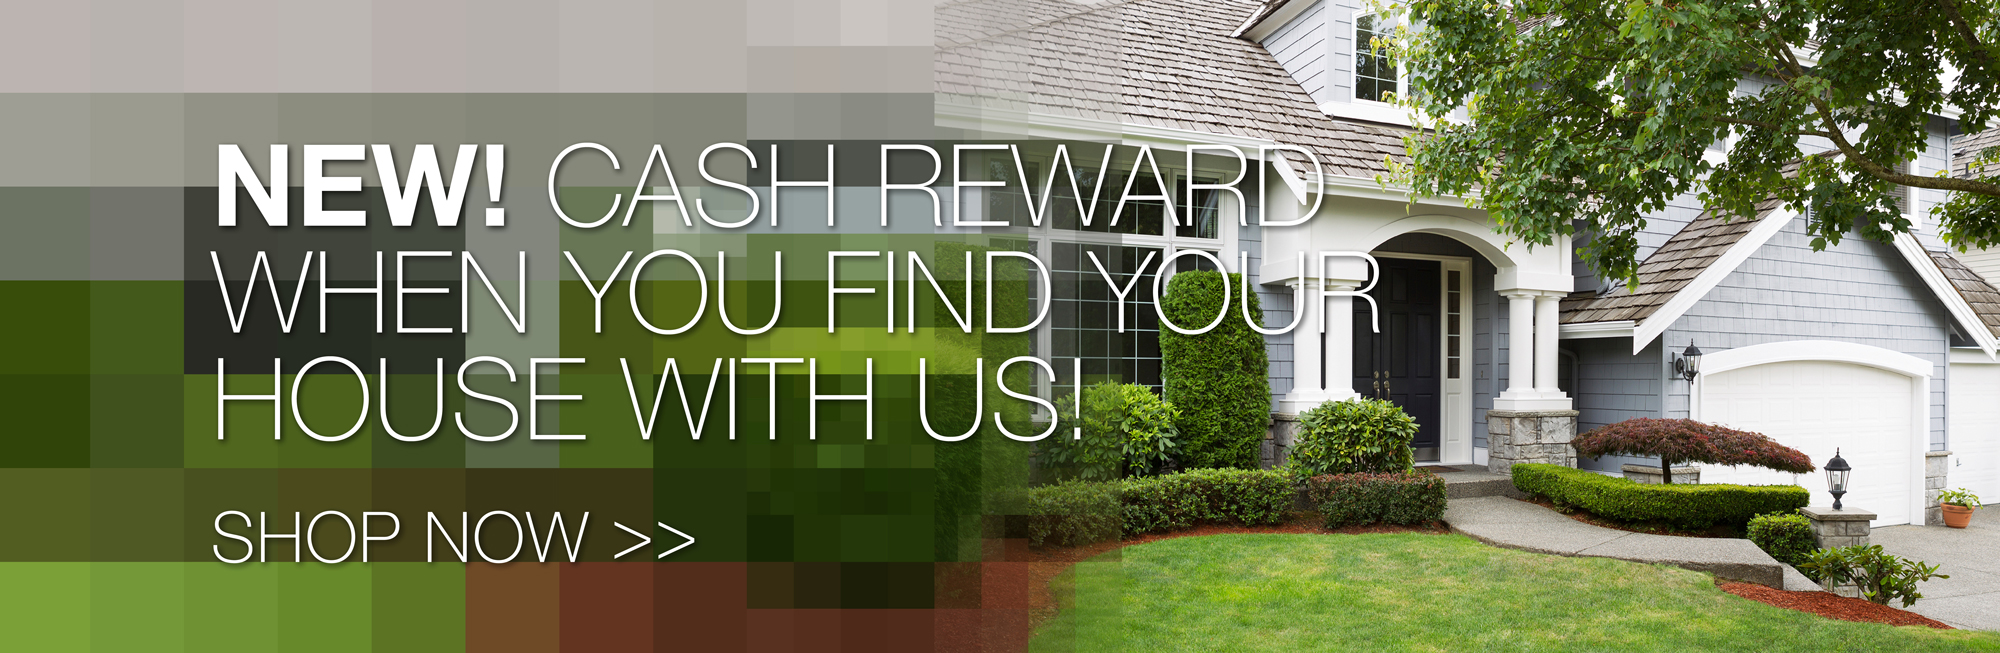 New! Cash Reward when you find your house with us! Shop now.